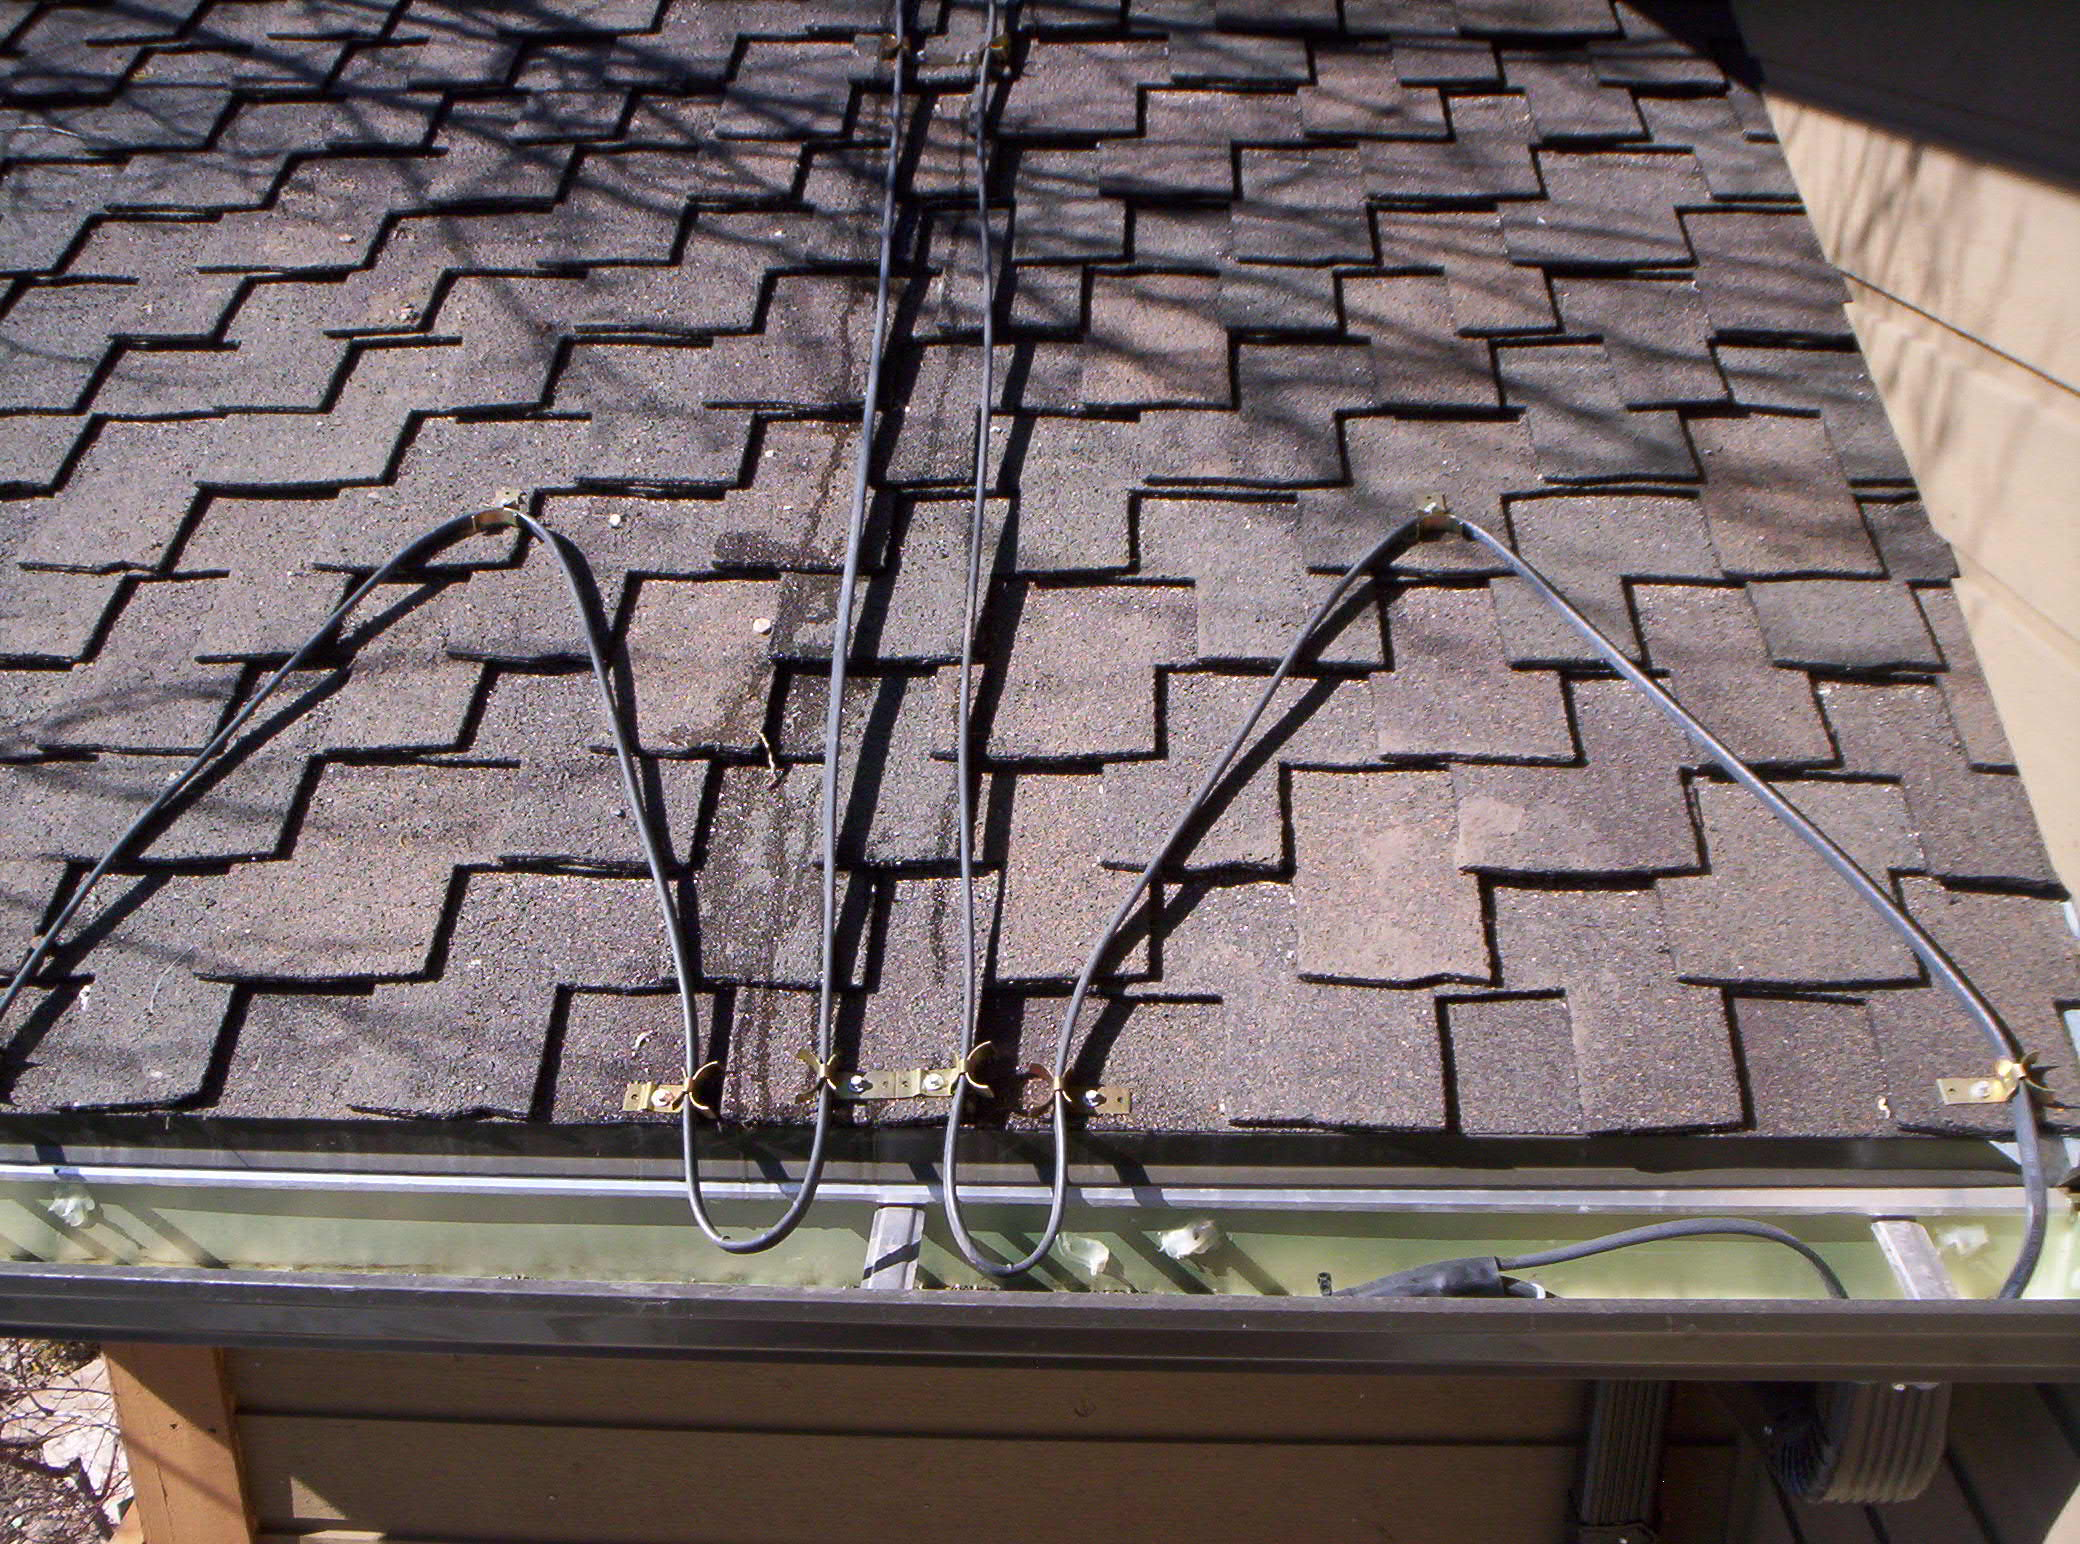 images of heat tape gutters roof - Roof Heat Tape